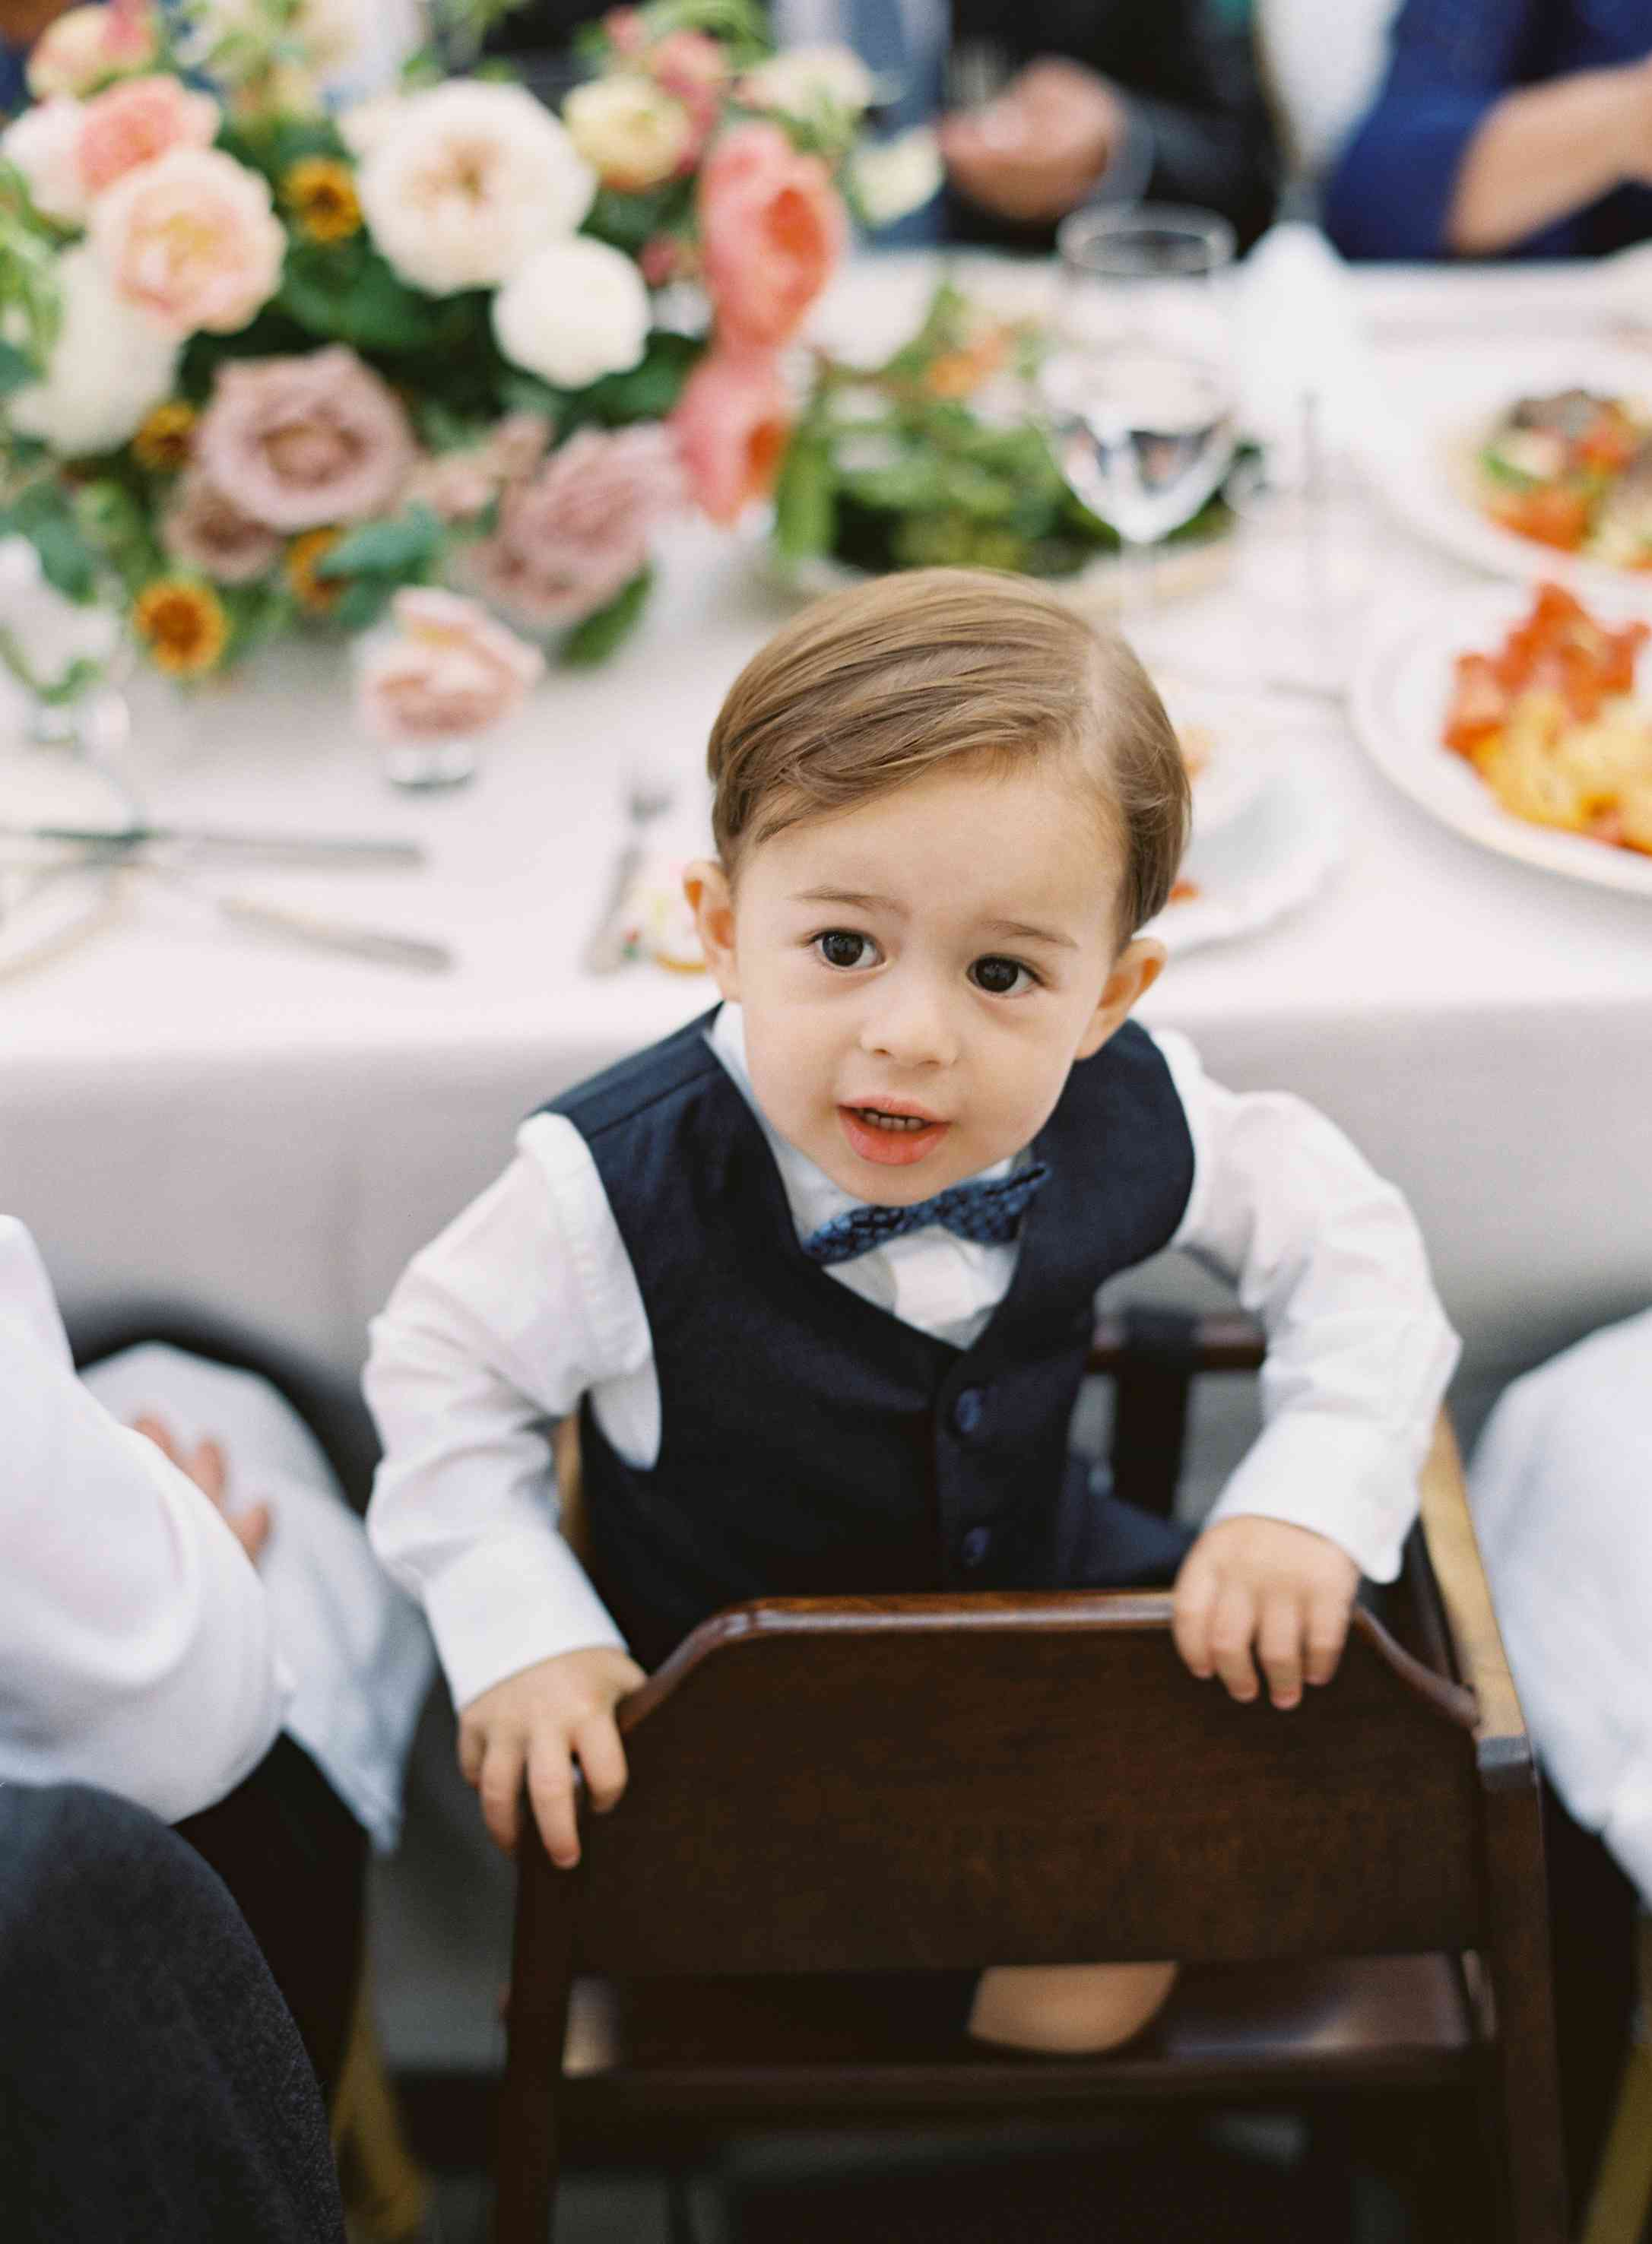 A young wedding guest at the reception